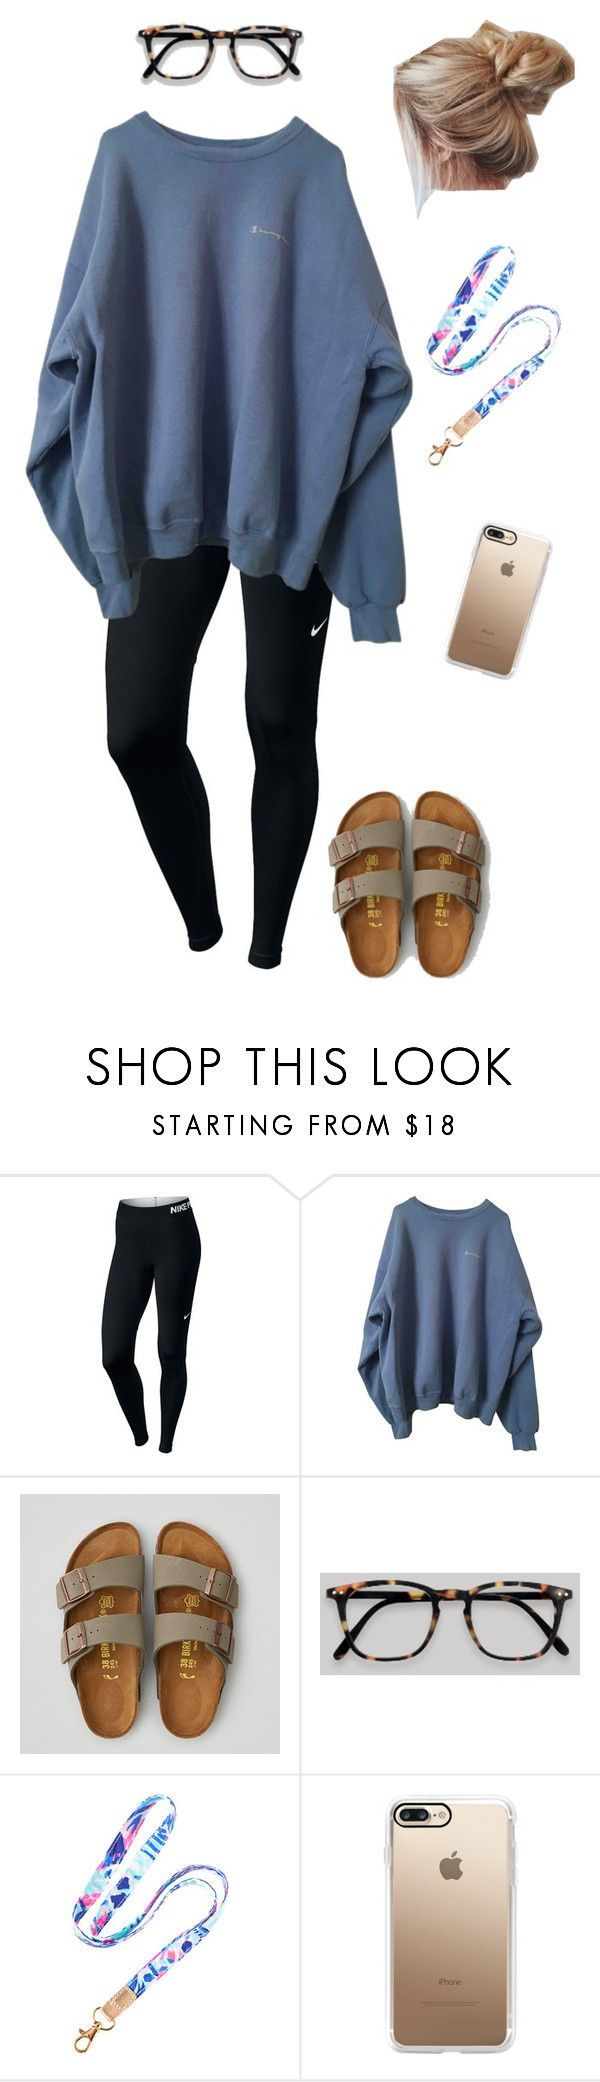 """road trip today!!!!"" by jsteely-1 on Polyvore featuring NIKE, American Eagle Outfitters, Lilly Pulitzer and Casetify"